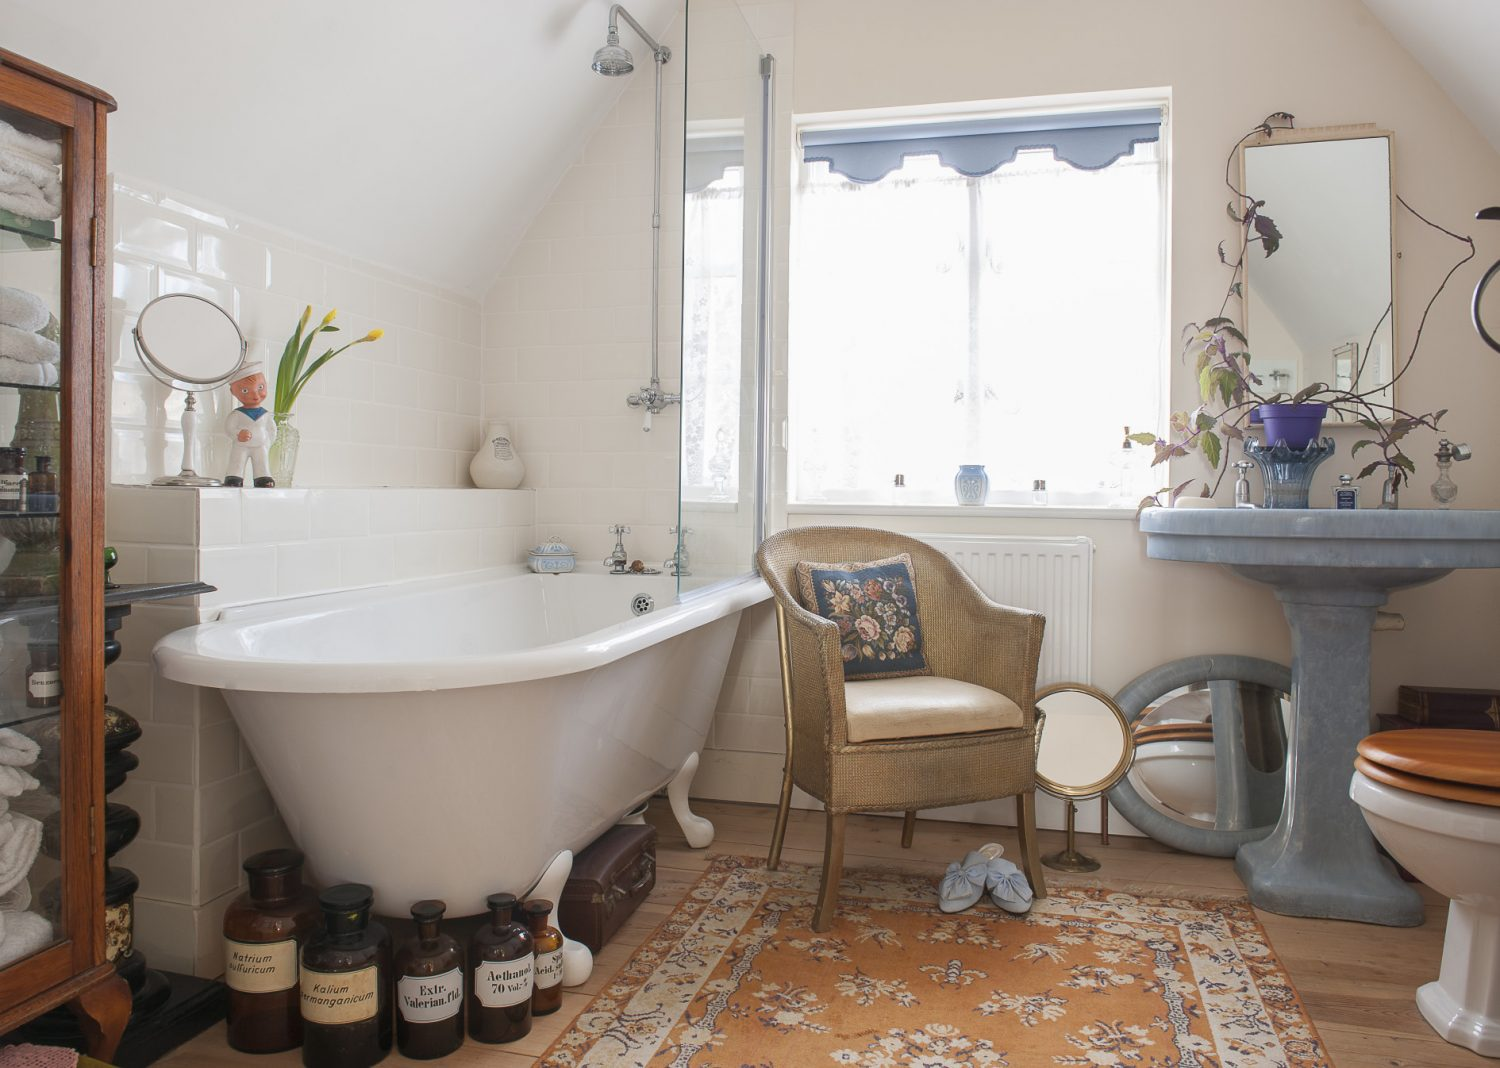 The bathroom features an amazing bright blue 1920s washbasin – not actually plumbed in, but too beautiful to leave in the second-hand yard in Hastings Old Town. Its vibrant colour is matched by a pair of pale blue grosgrain mule slippers Adrian couldn't resist from Fortnum & Mason